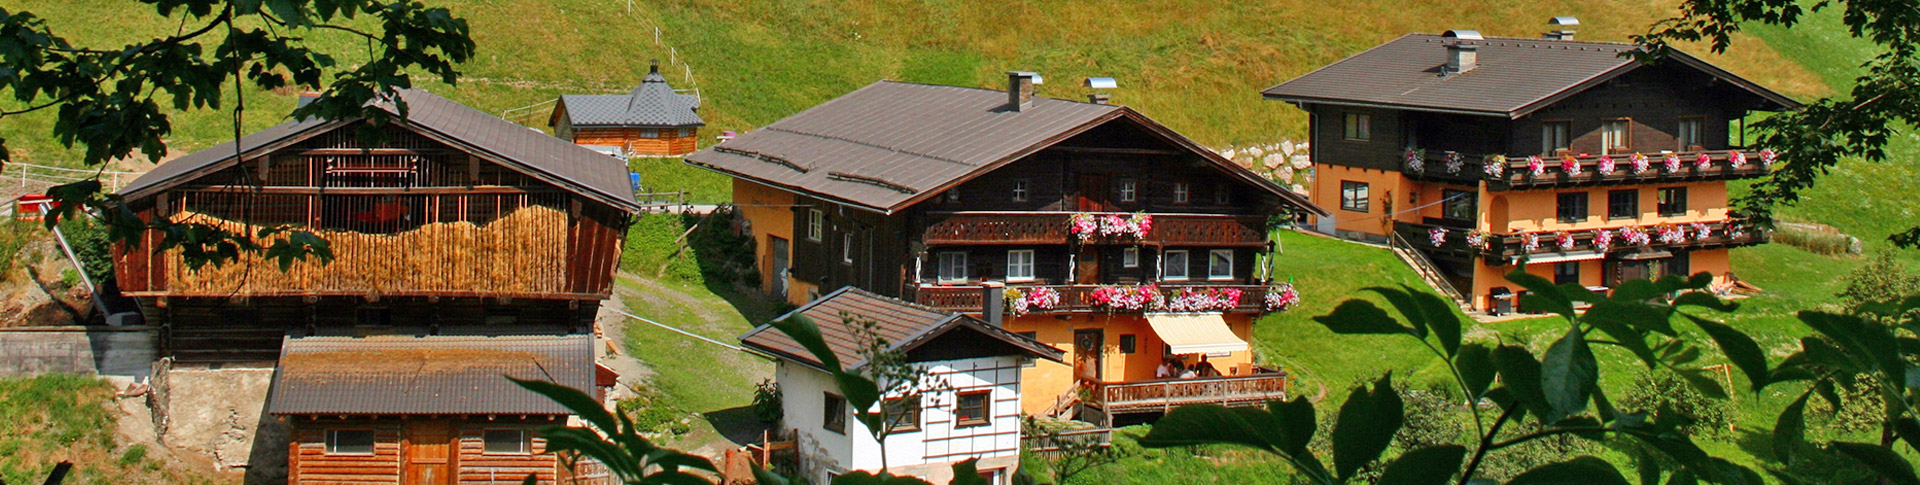 Gstehaus Maria - Bed and breakfasts for Rent in Viehhofen